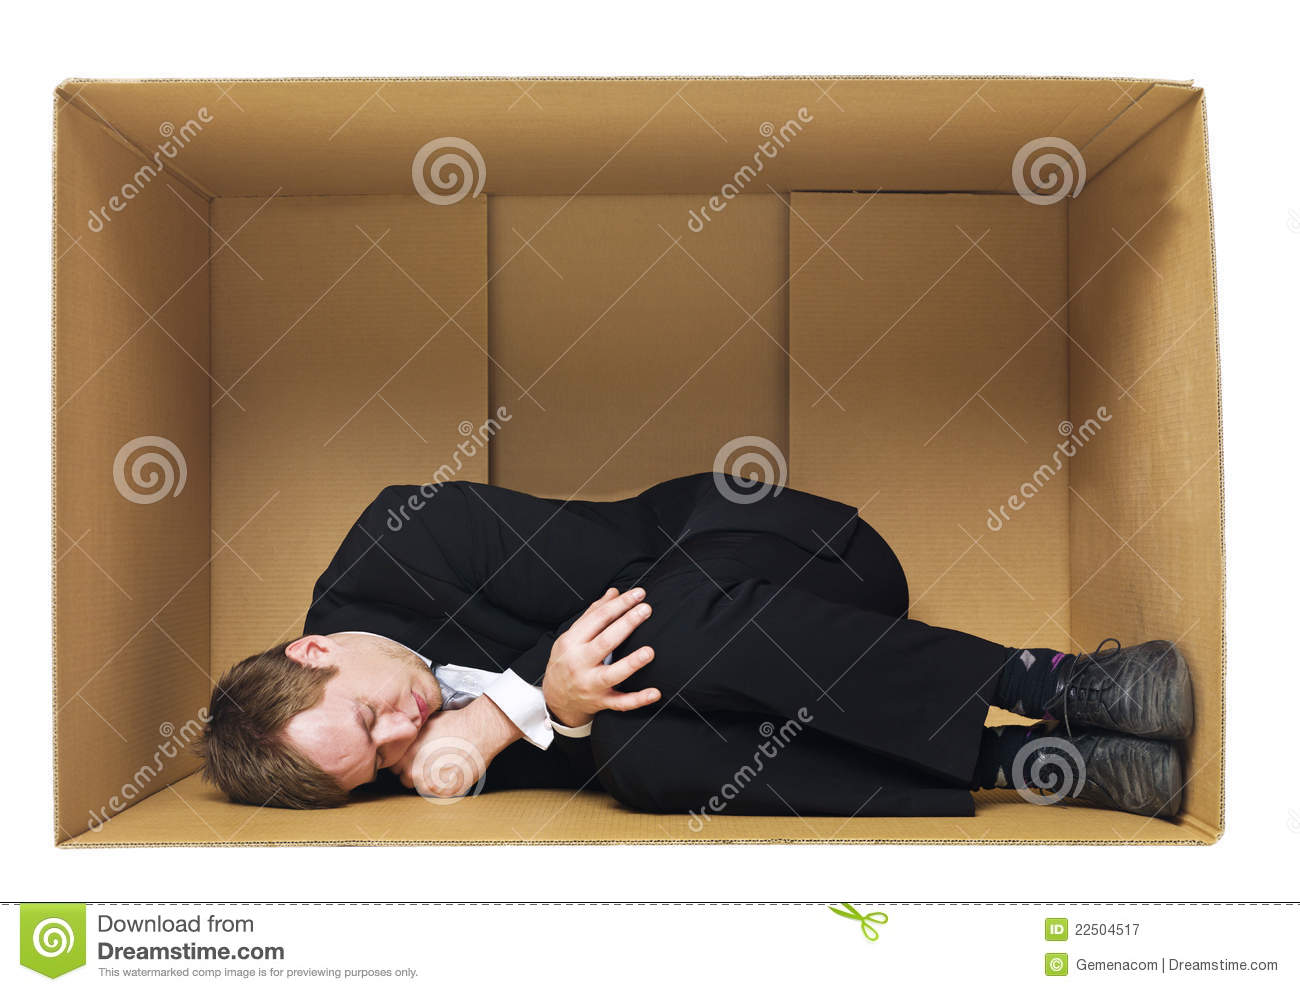 sleeping in a cardboard box royalty free stock photography image 22504517. Black Bedroom Furniture Sets. Home Design Ideas